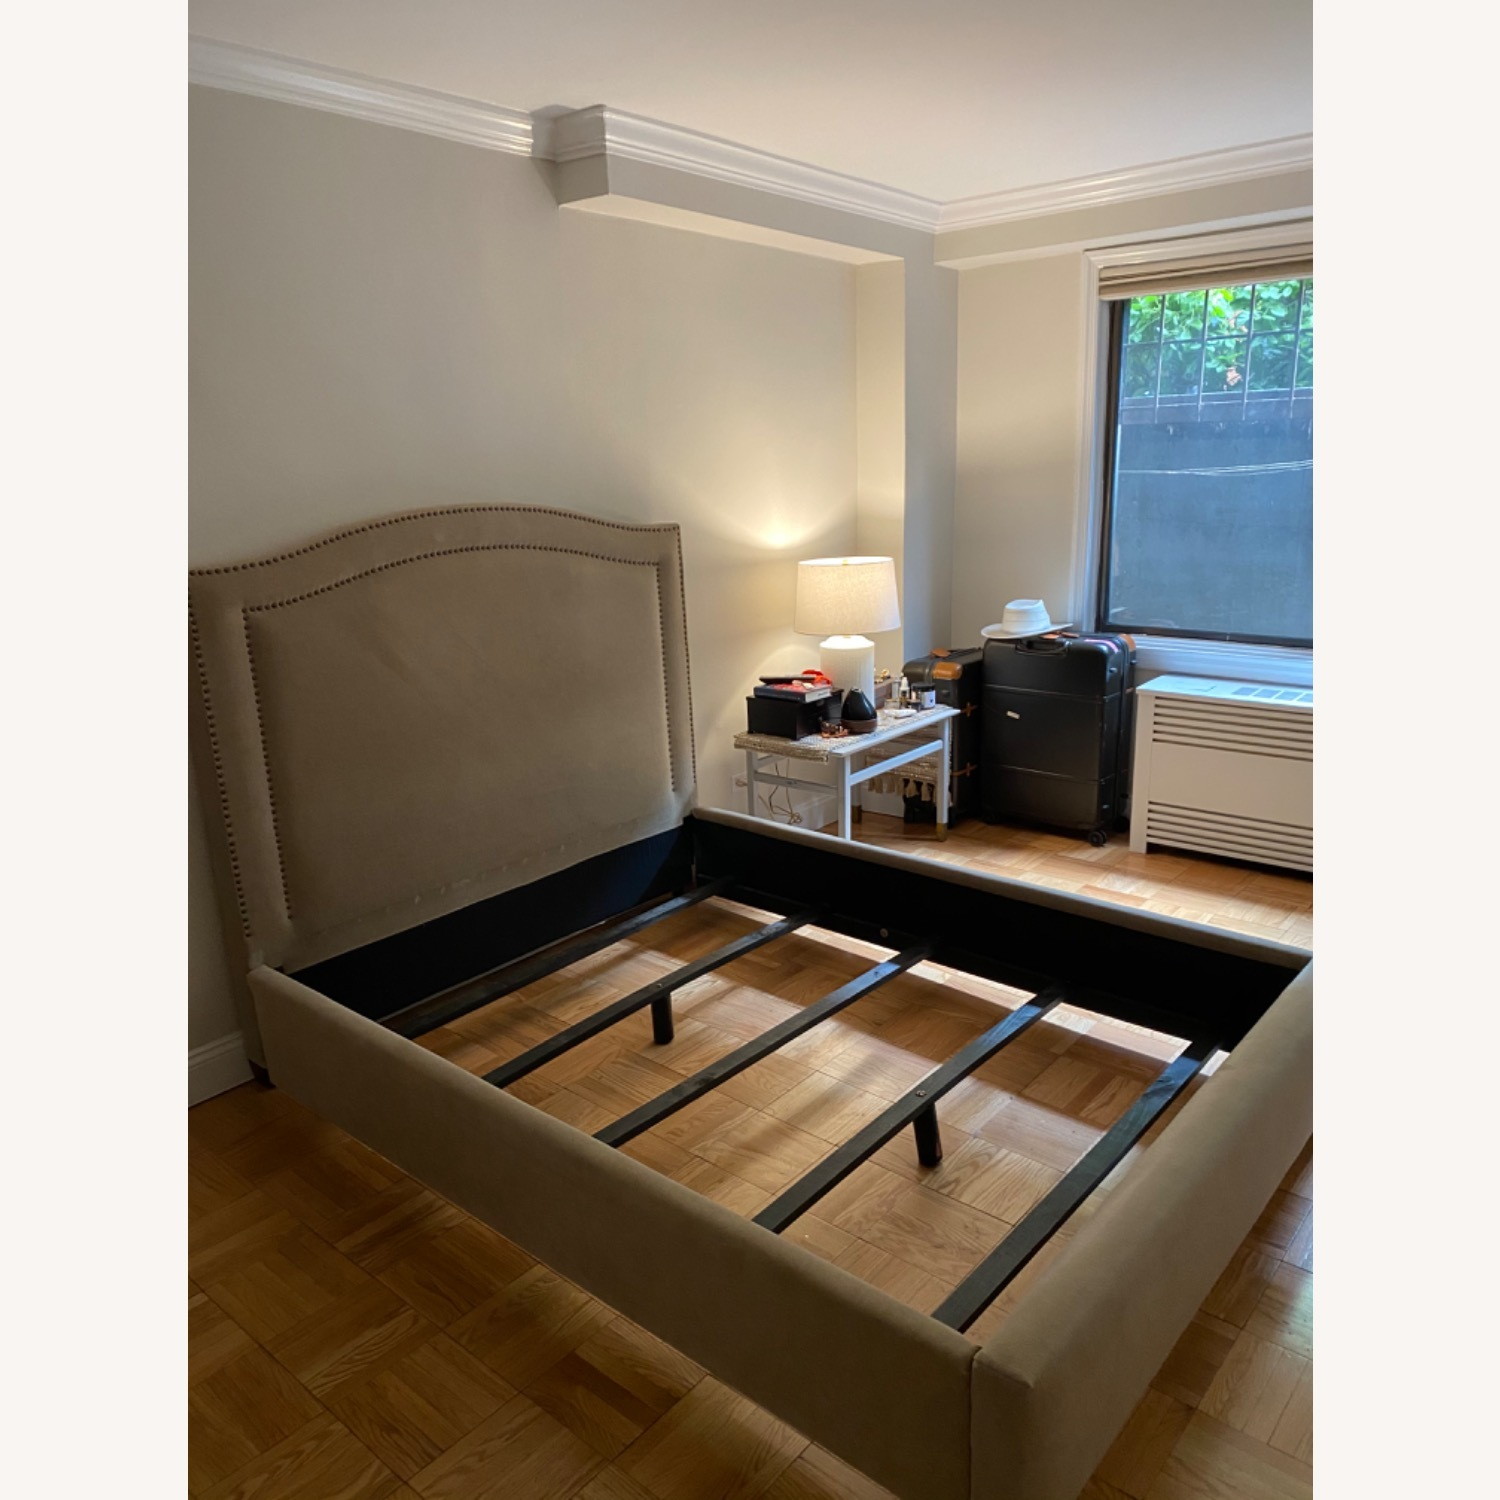 Pottery Barn Tamsen Bed - image-1